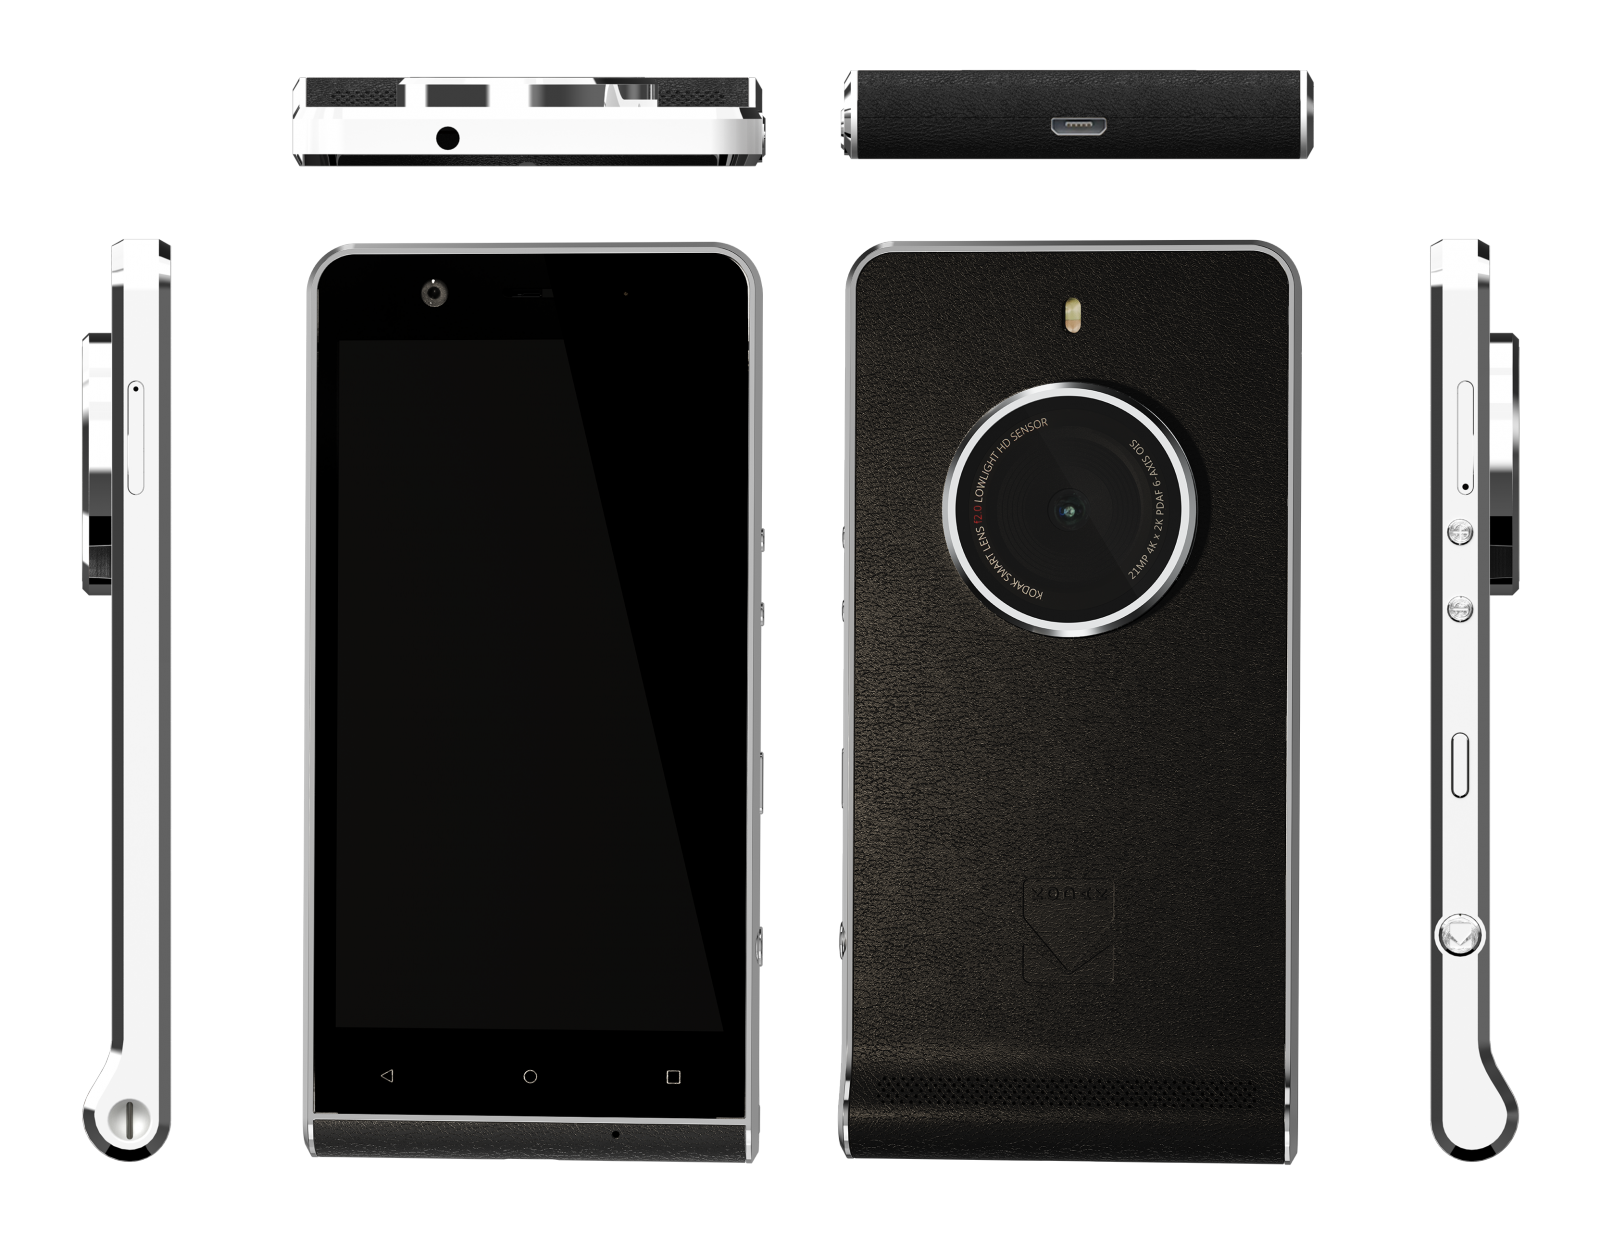 Would you buy a Kodak smartphone aimed at photo fans?